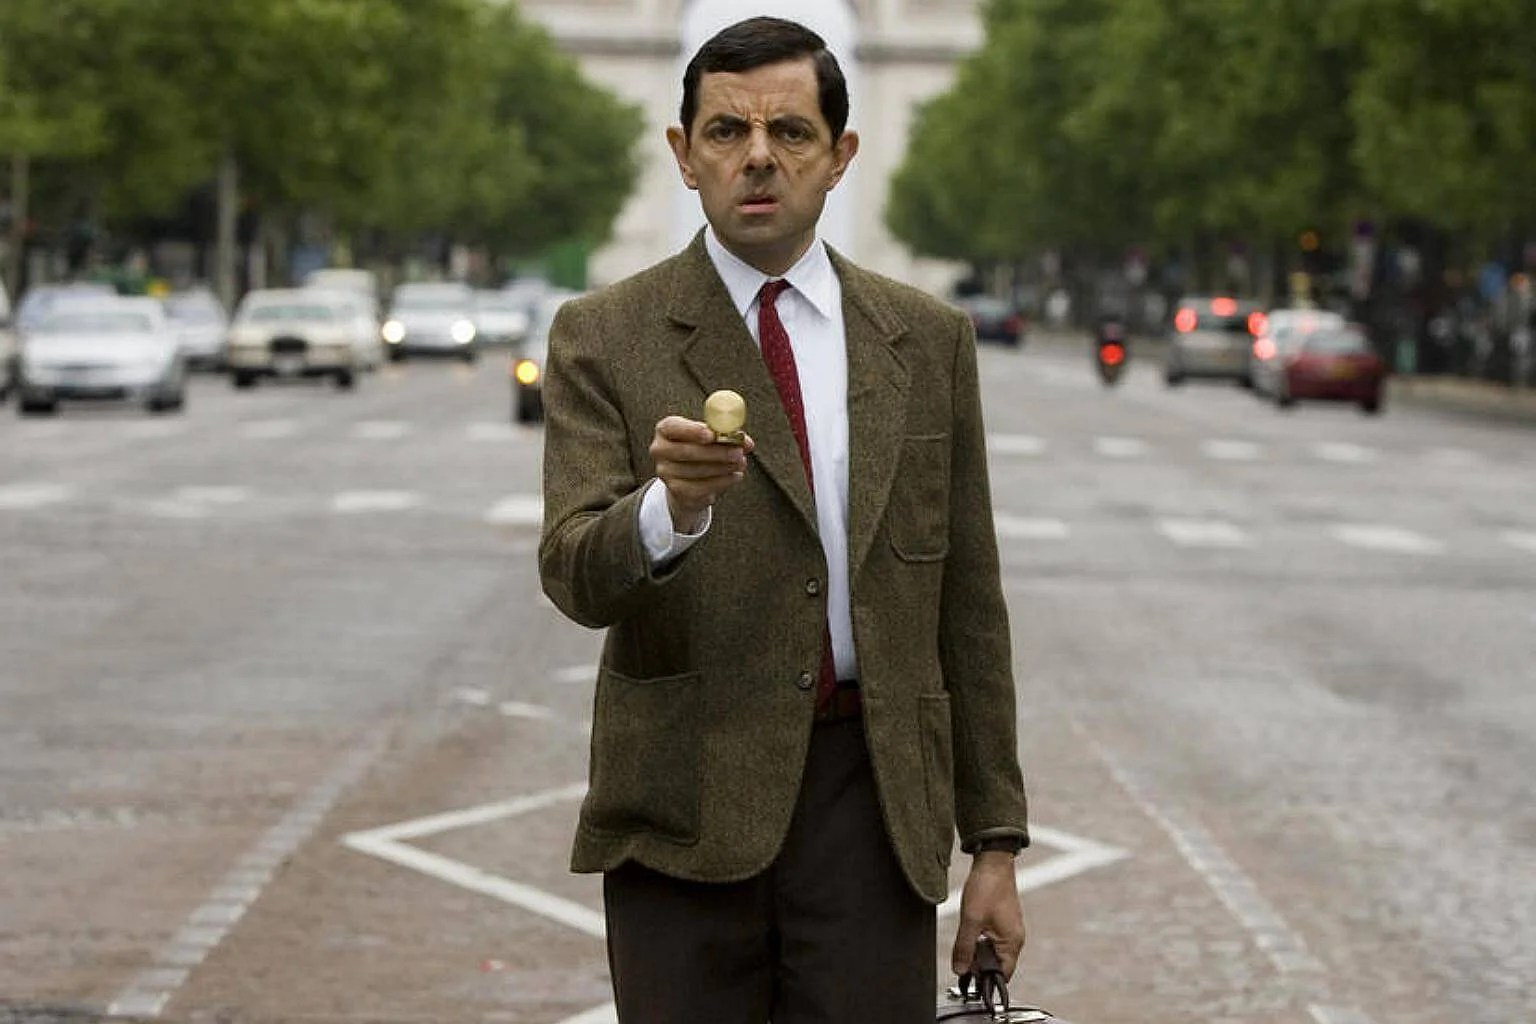 Mr Bean Rowan Atkinson To Appear As Mr Bean In His First Chinese Film